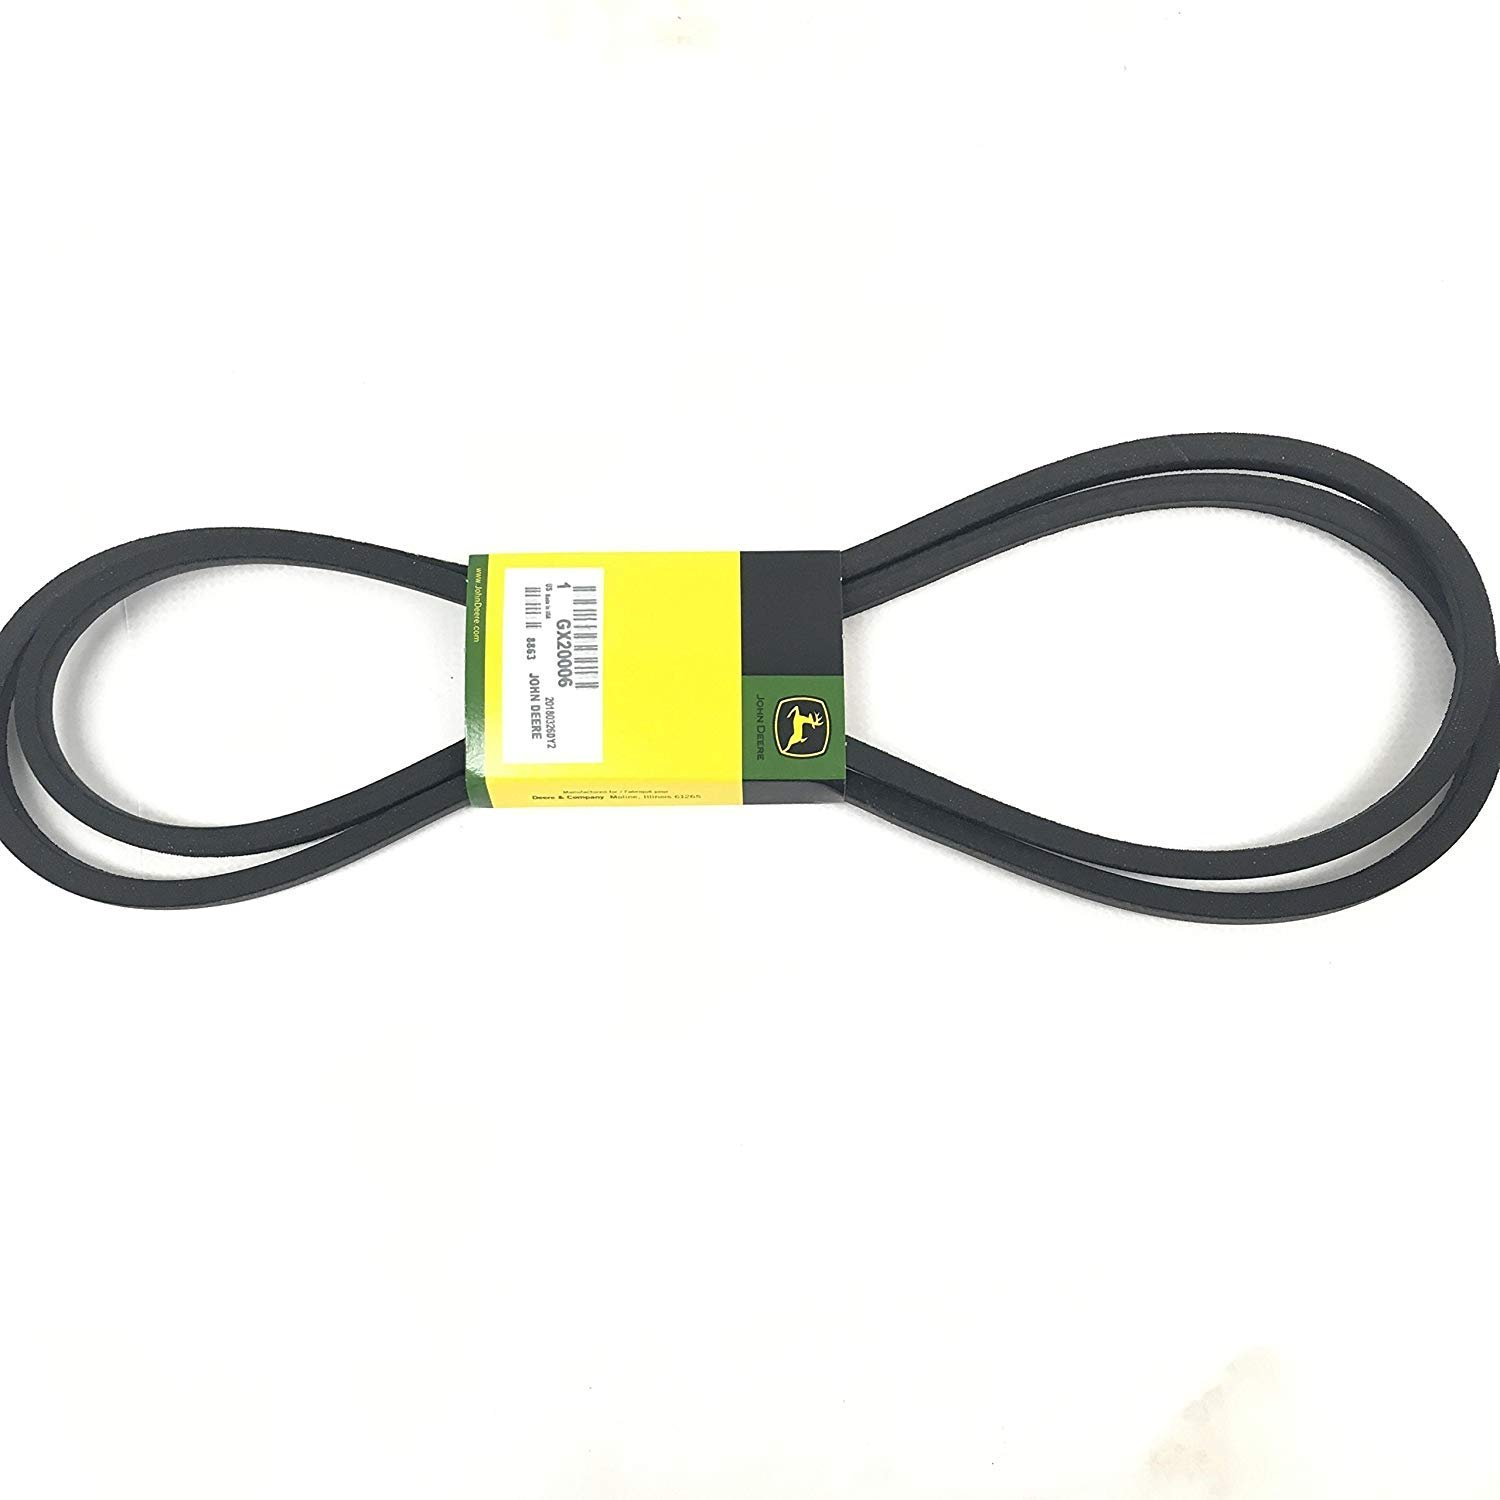 John Deere Gx20006 Lawn Tractor Transmission Drive Belt Does Anyone Have A Mowing Diagram For Lx Genuine Original Equipment Manufacturer Oem Part Garden Outdoor